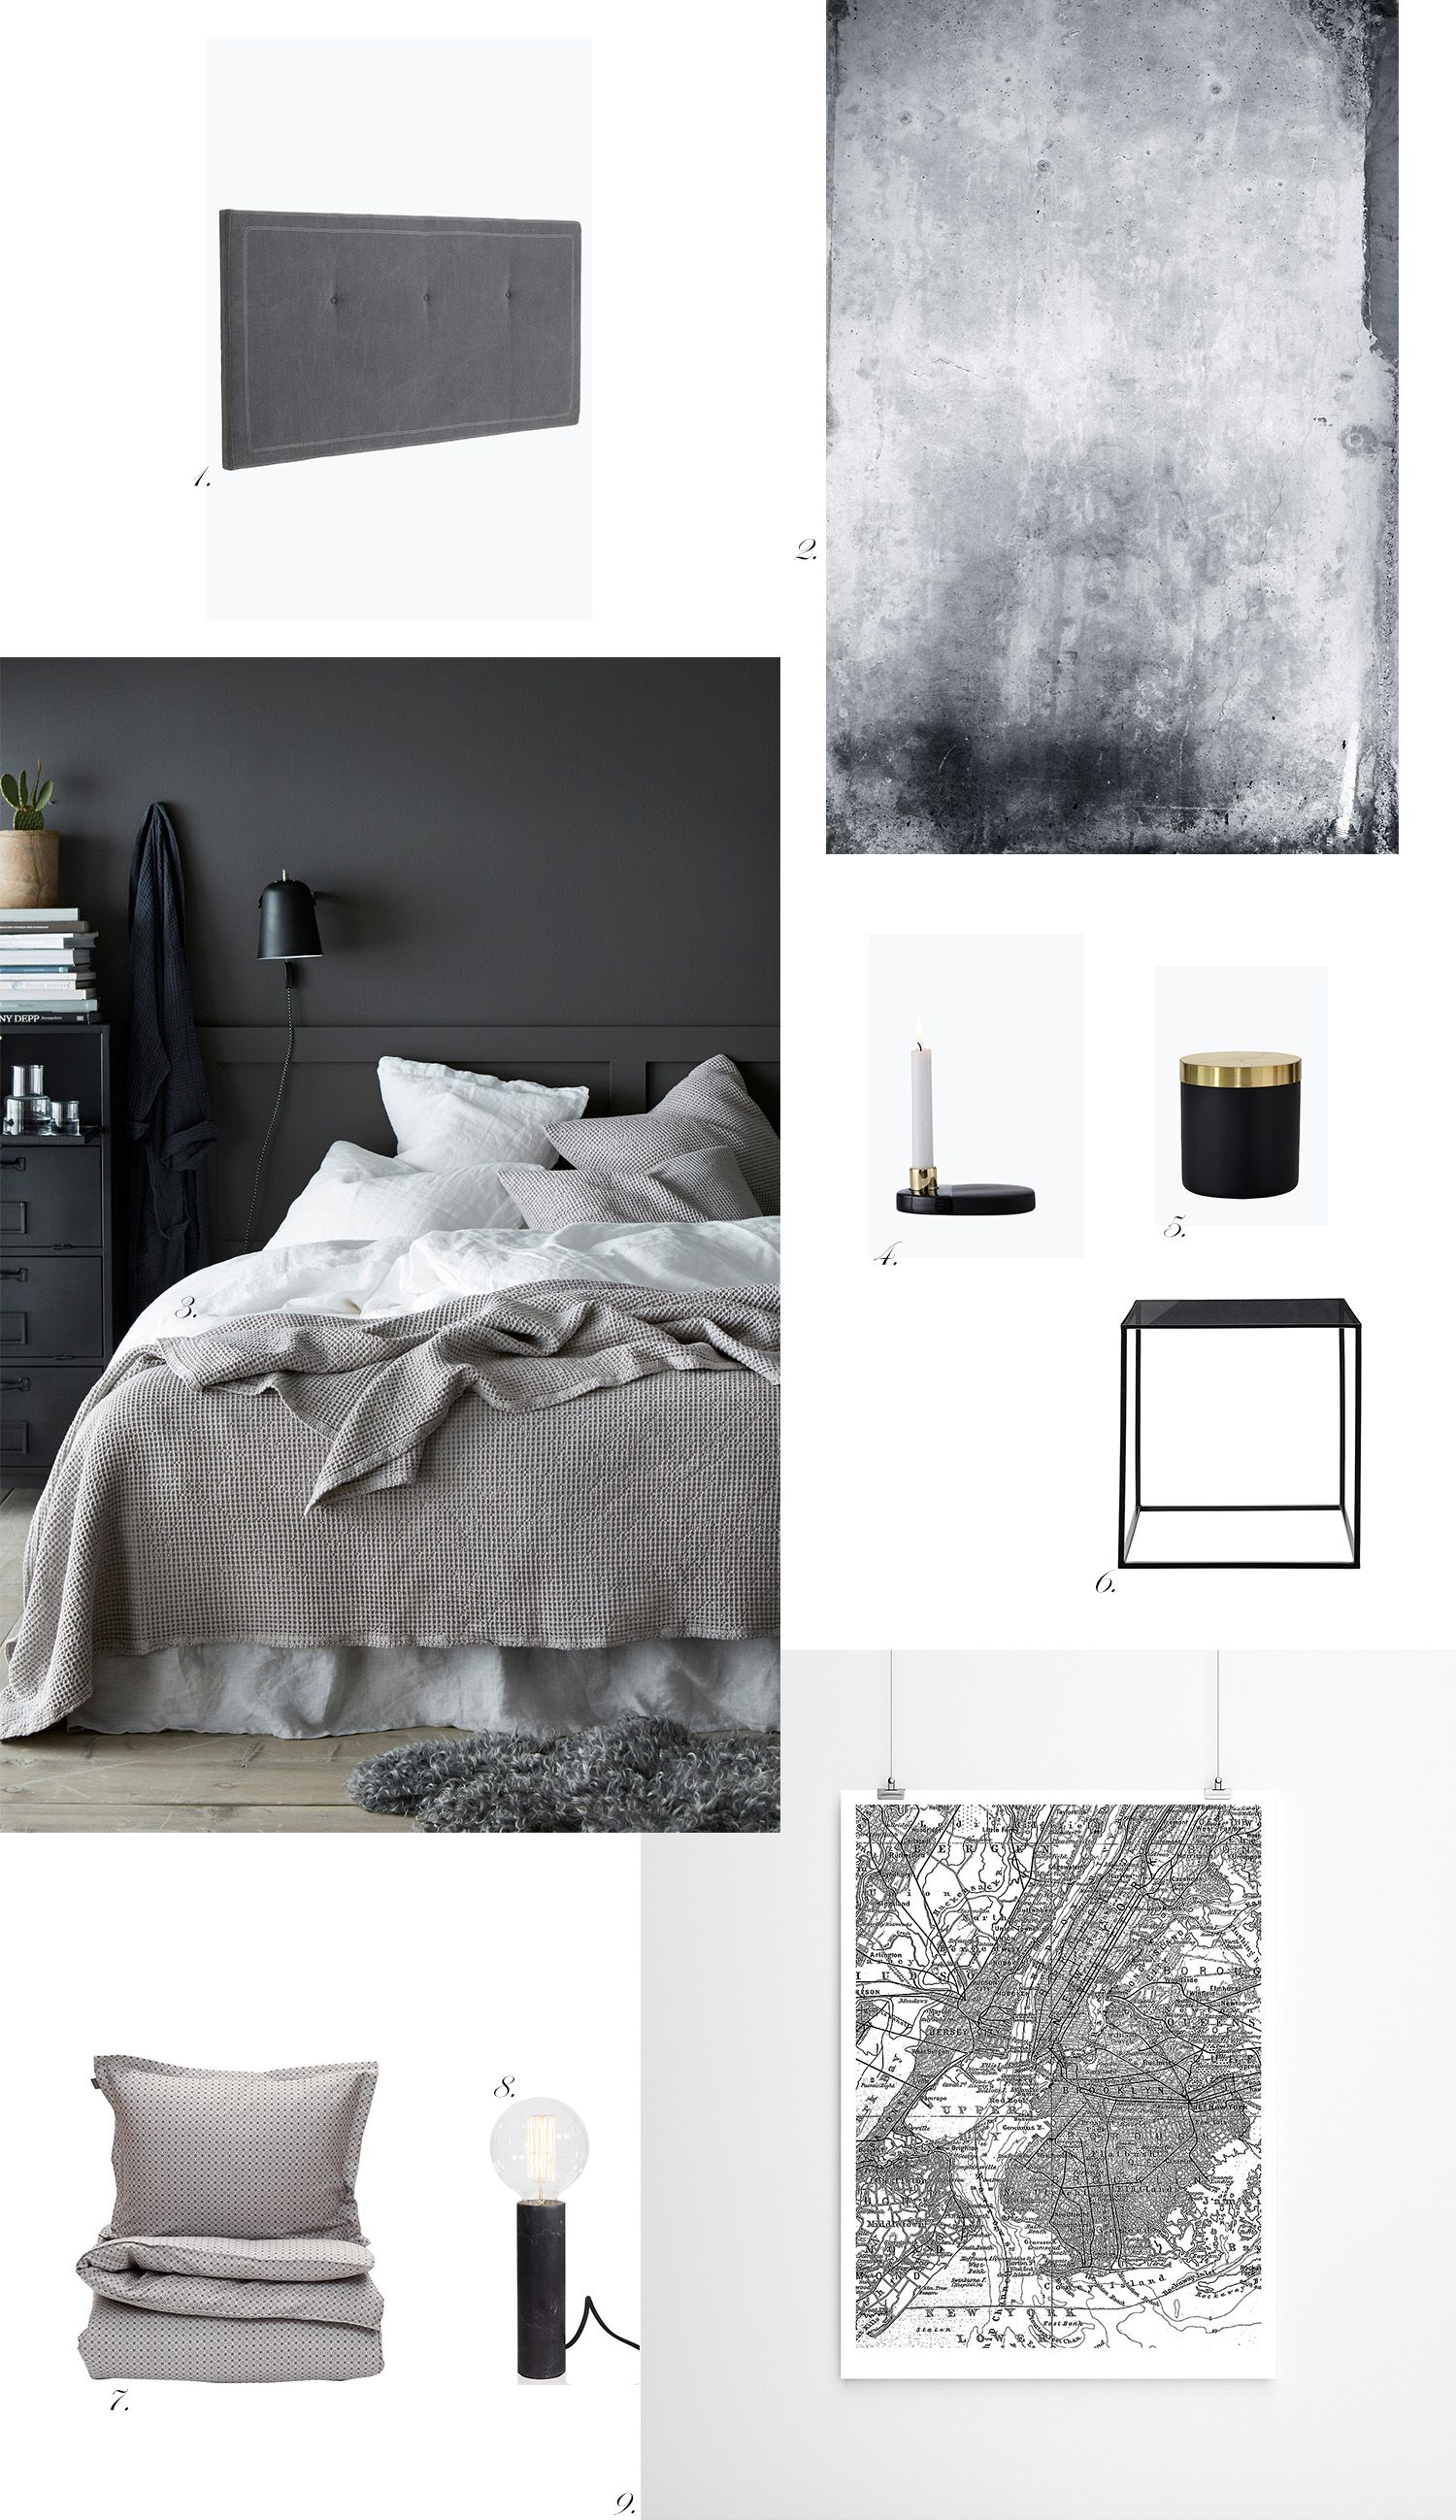 Char and the city - Bachelor pad - ideas for interior design and decoration - inspiration from webshops - grey, black and white - read more on the blog: http://www.idealista.fi/charandthecity/2016/09/28/bachelor-pad #bachelorpad #interior #design